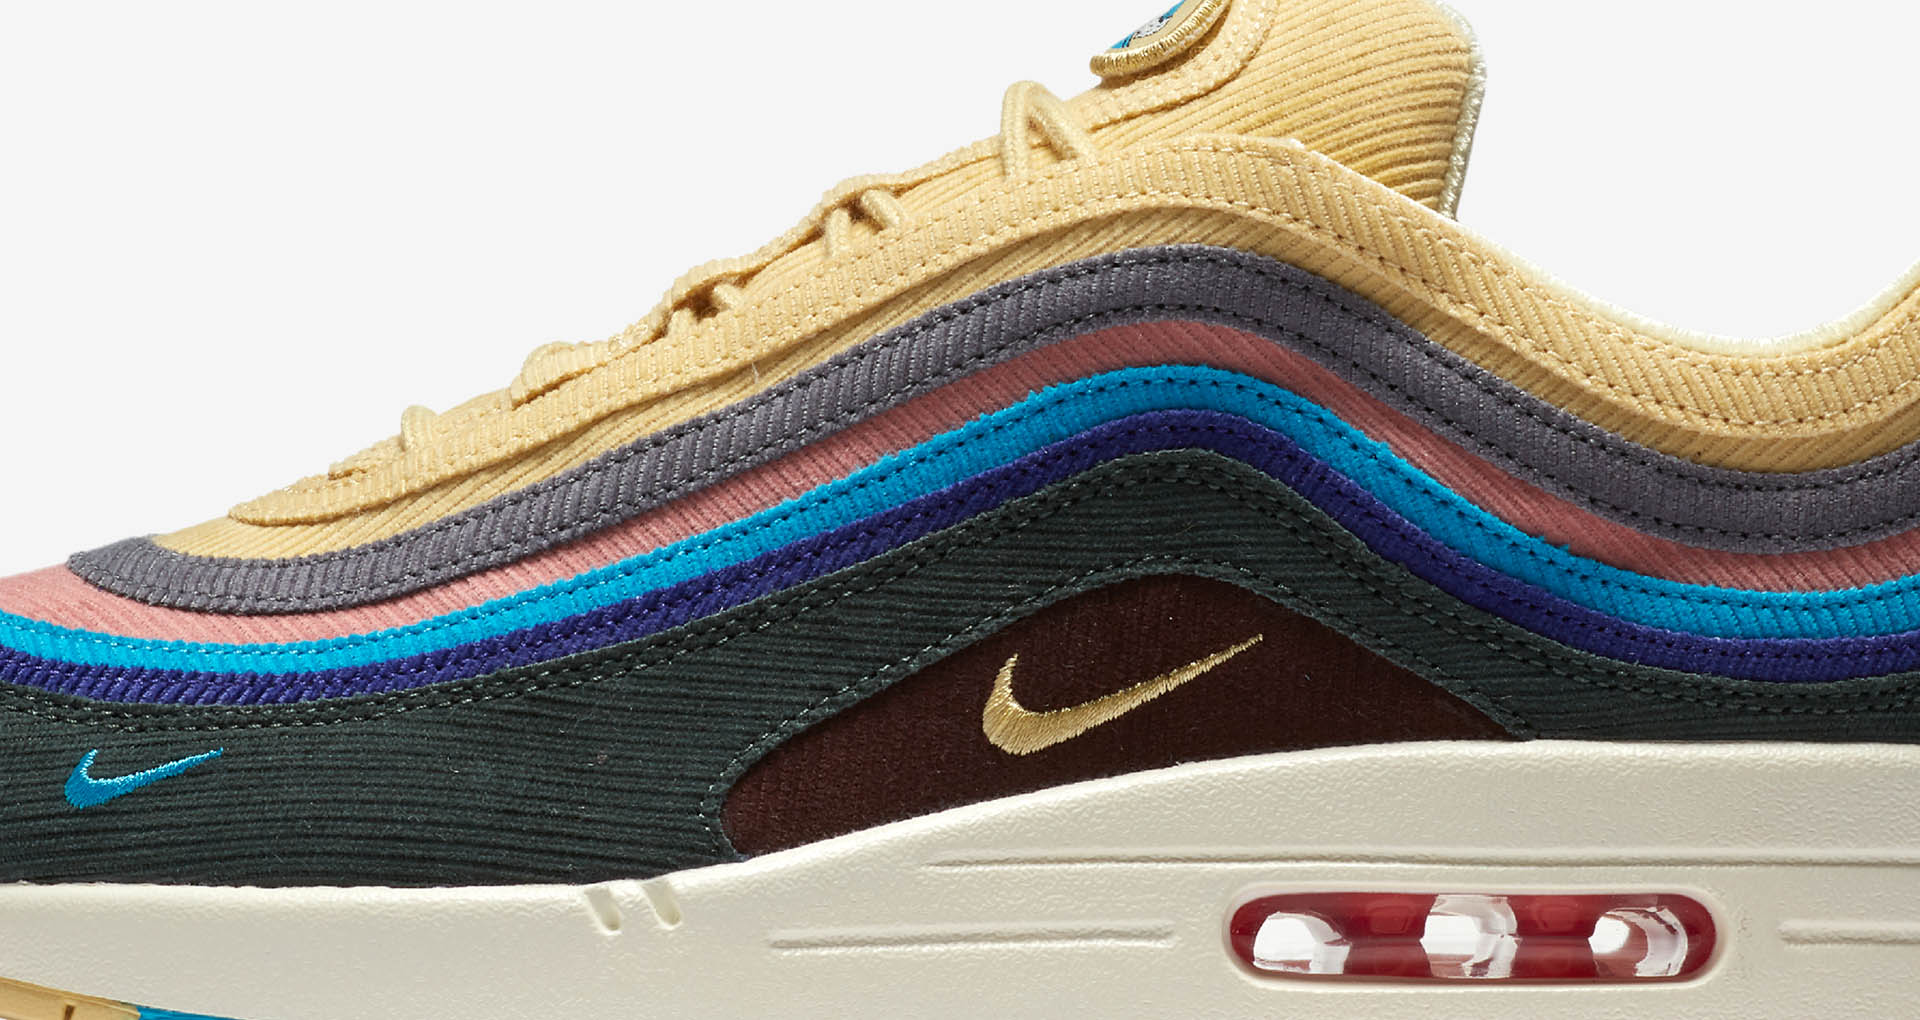 Sean Wotherspoon x Air Max 971 Will Release On Air Max Day